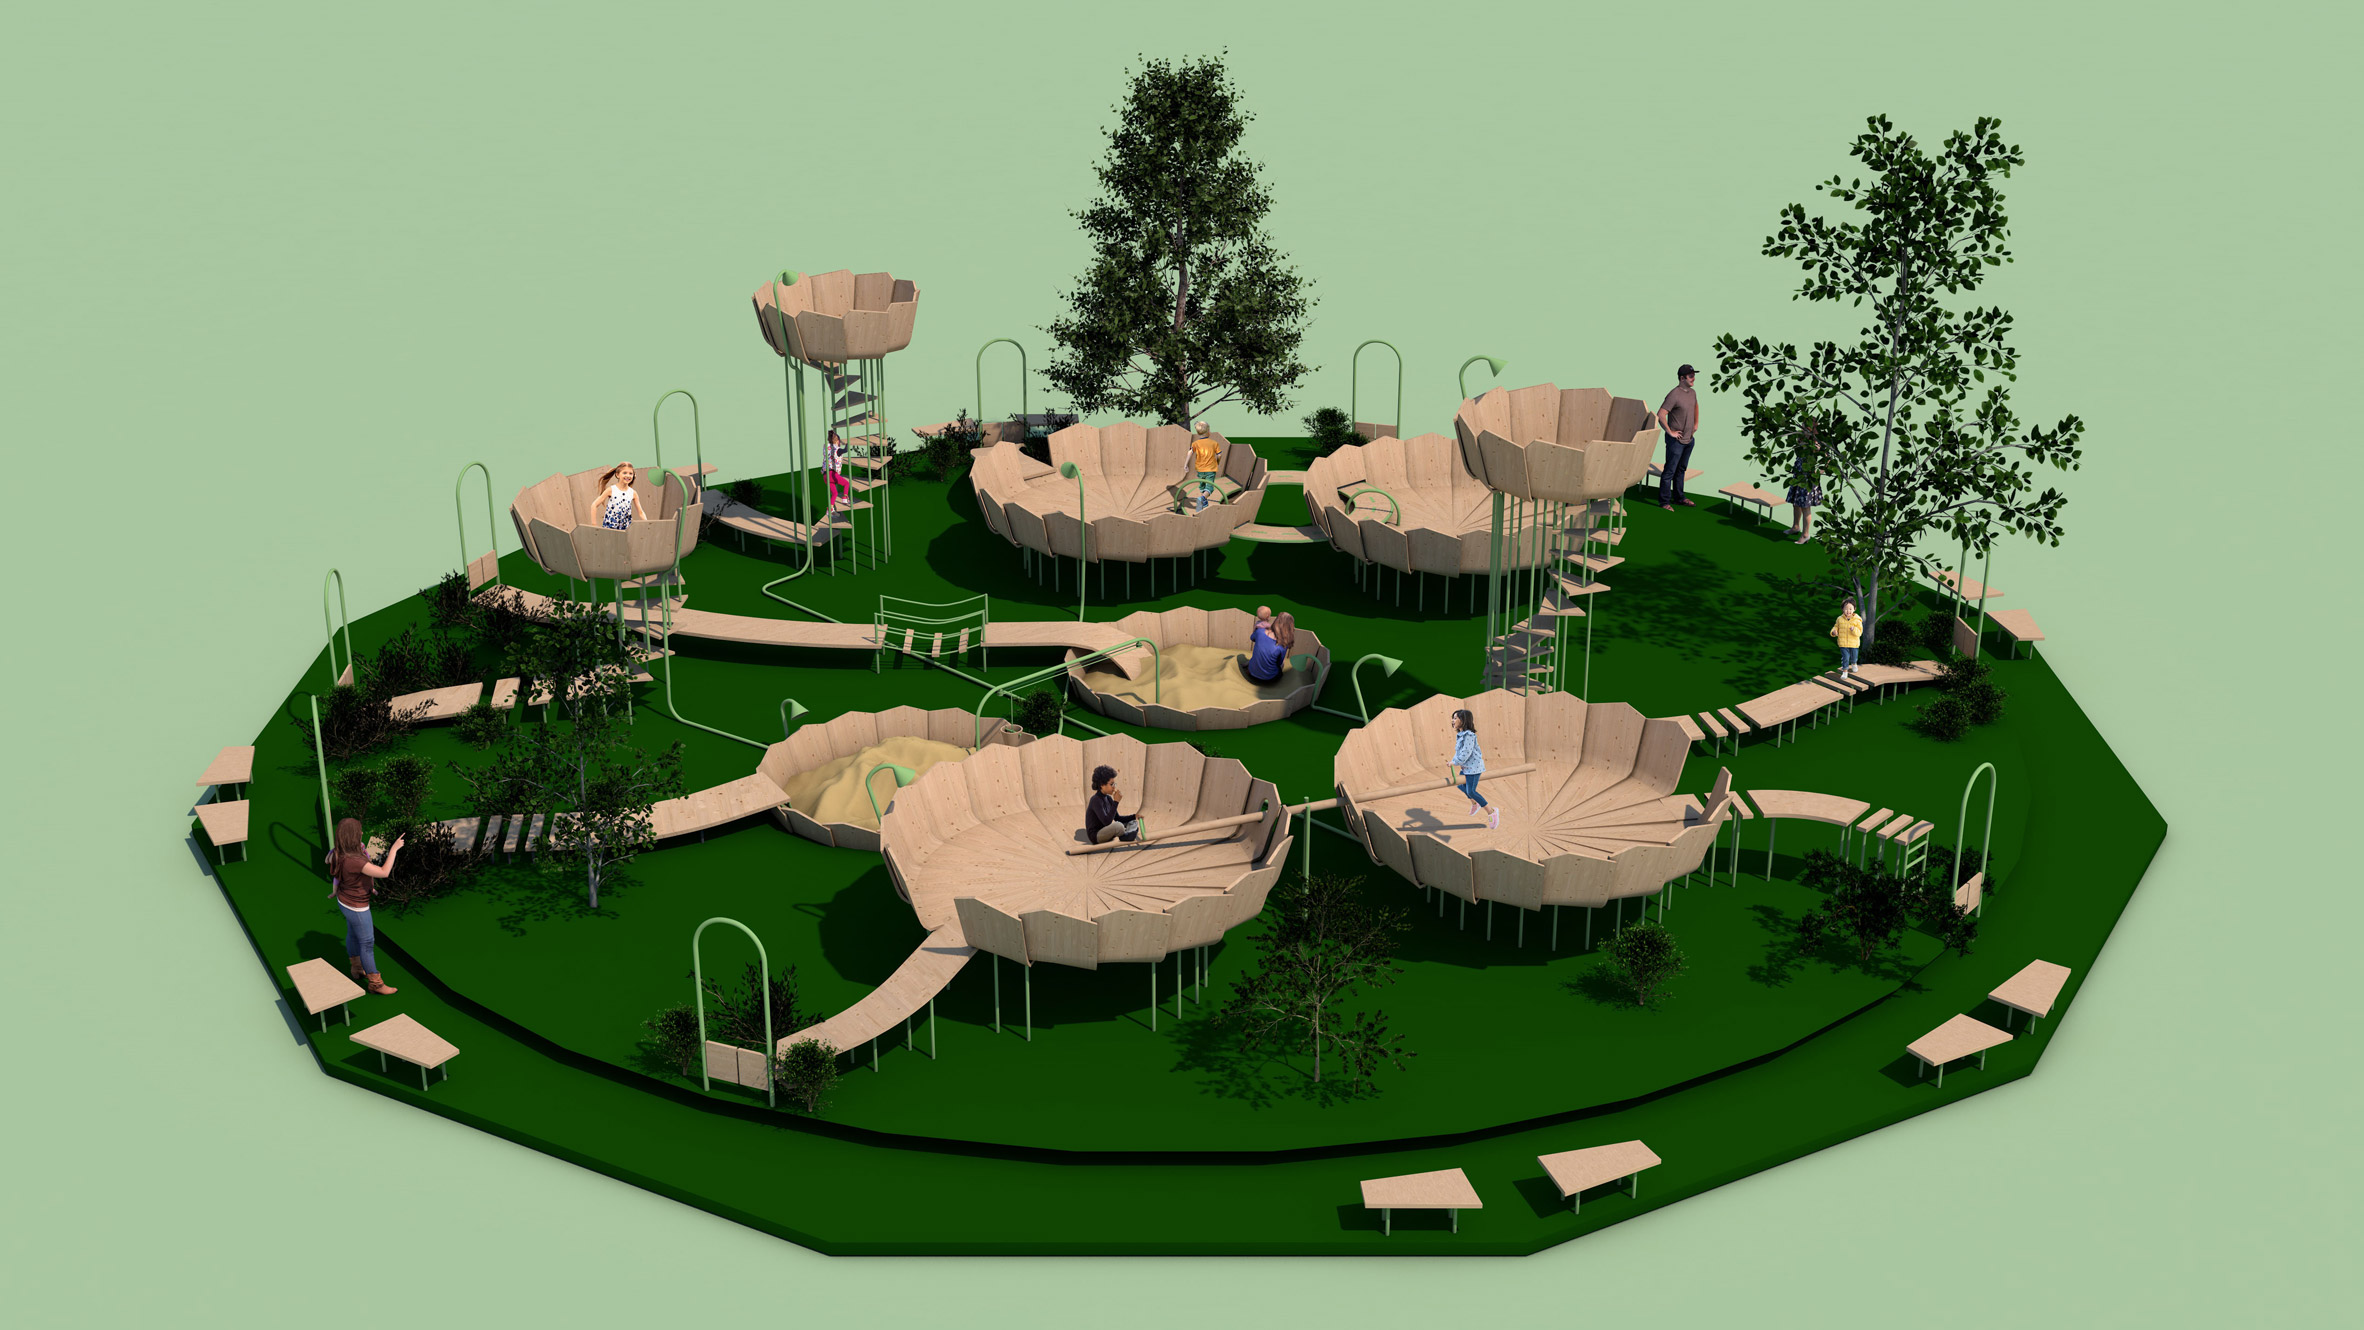 play-rimbin-playground-concept-design_dezeen_2364_hero-1.jpg